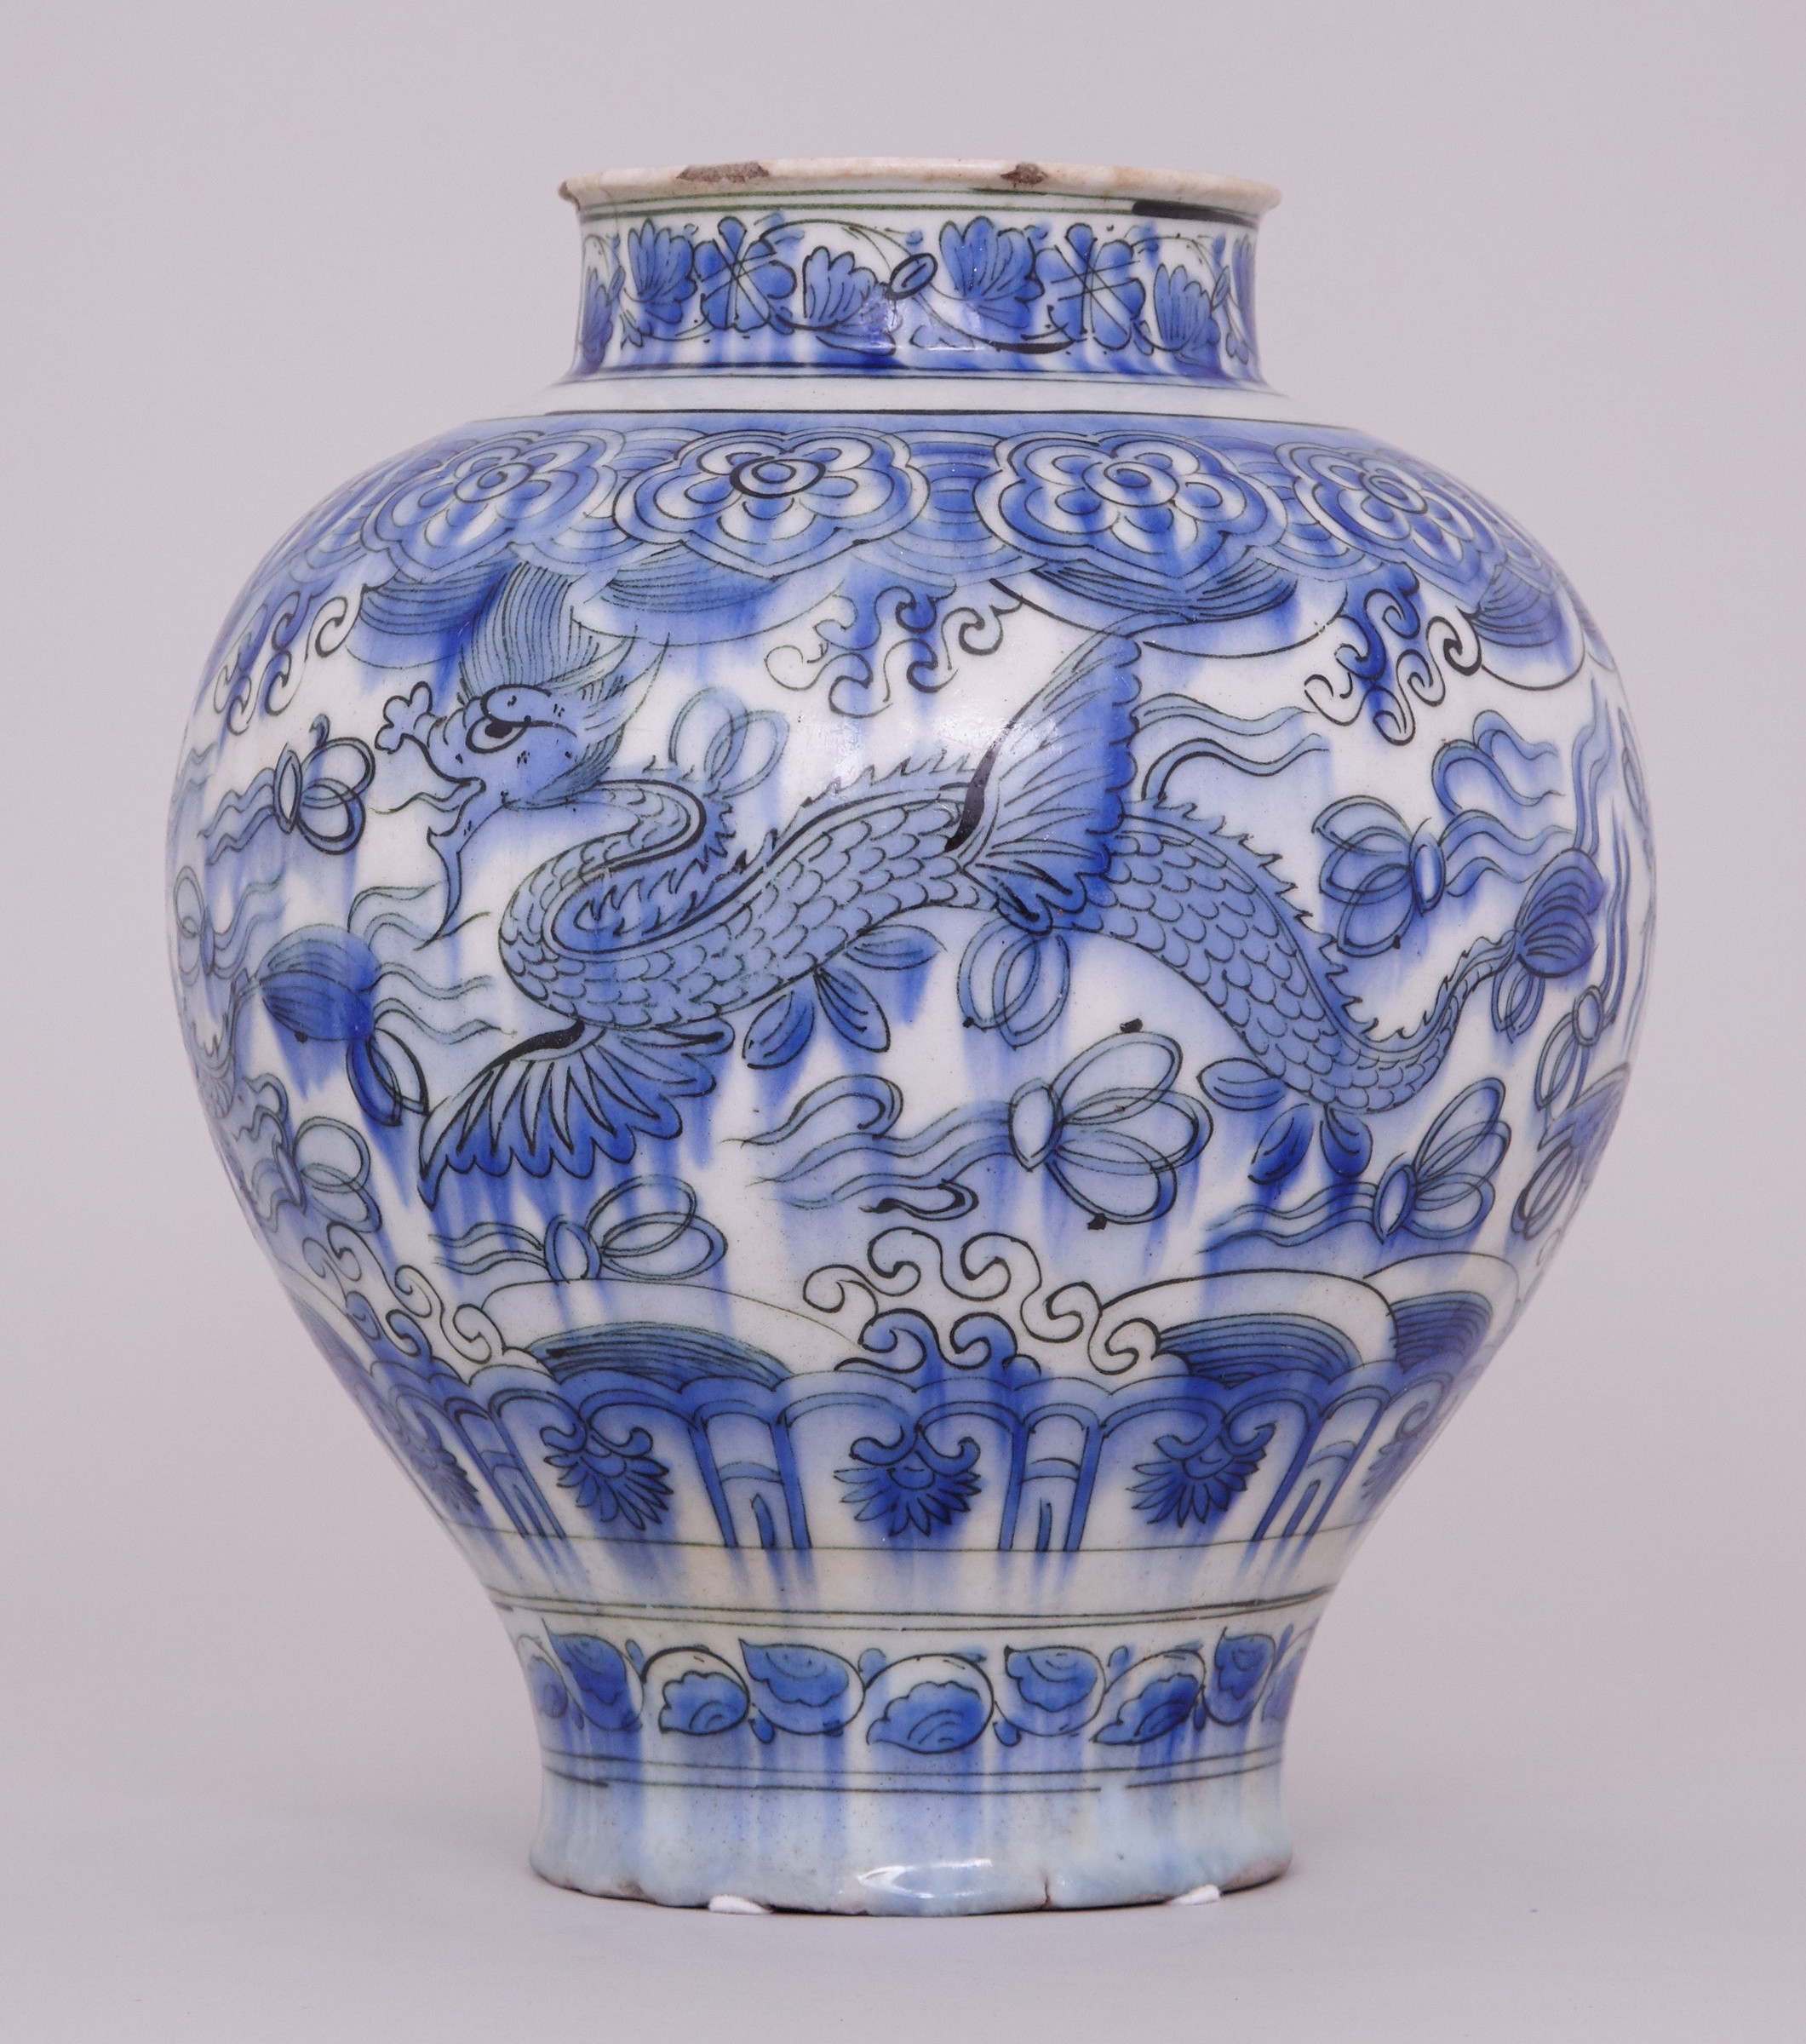 Blue White Porcelain Vase Of A Blue and White Persian Safavid Jar 17th Century Anita Gray Pertaining to A Blue and White Persian Safavid Jar